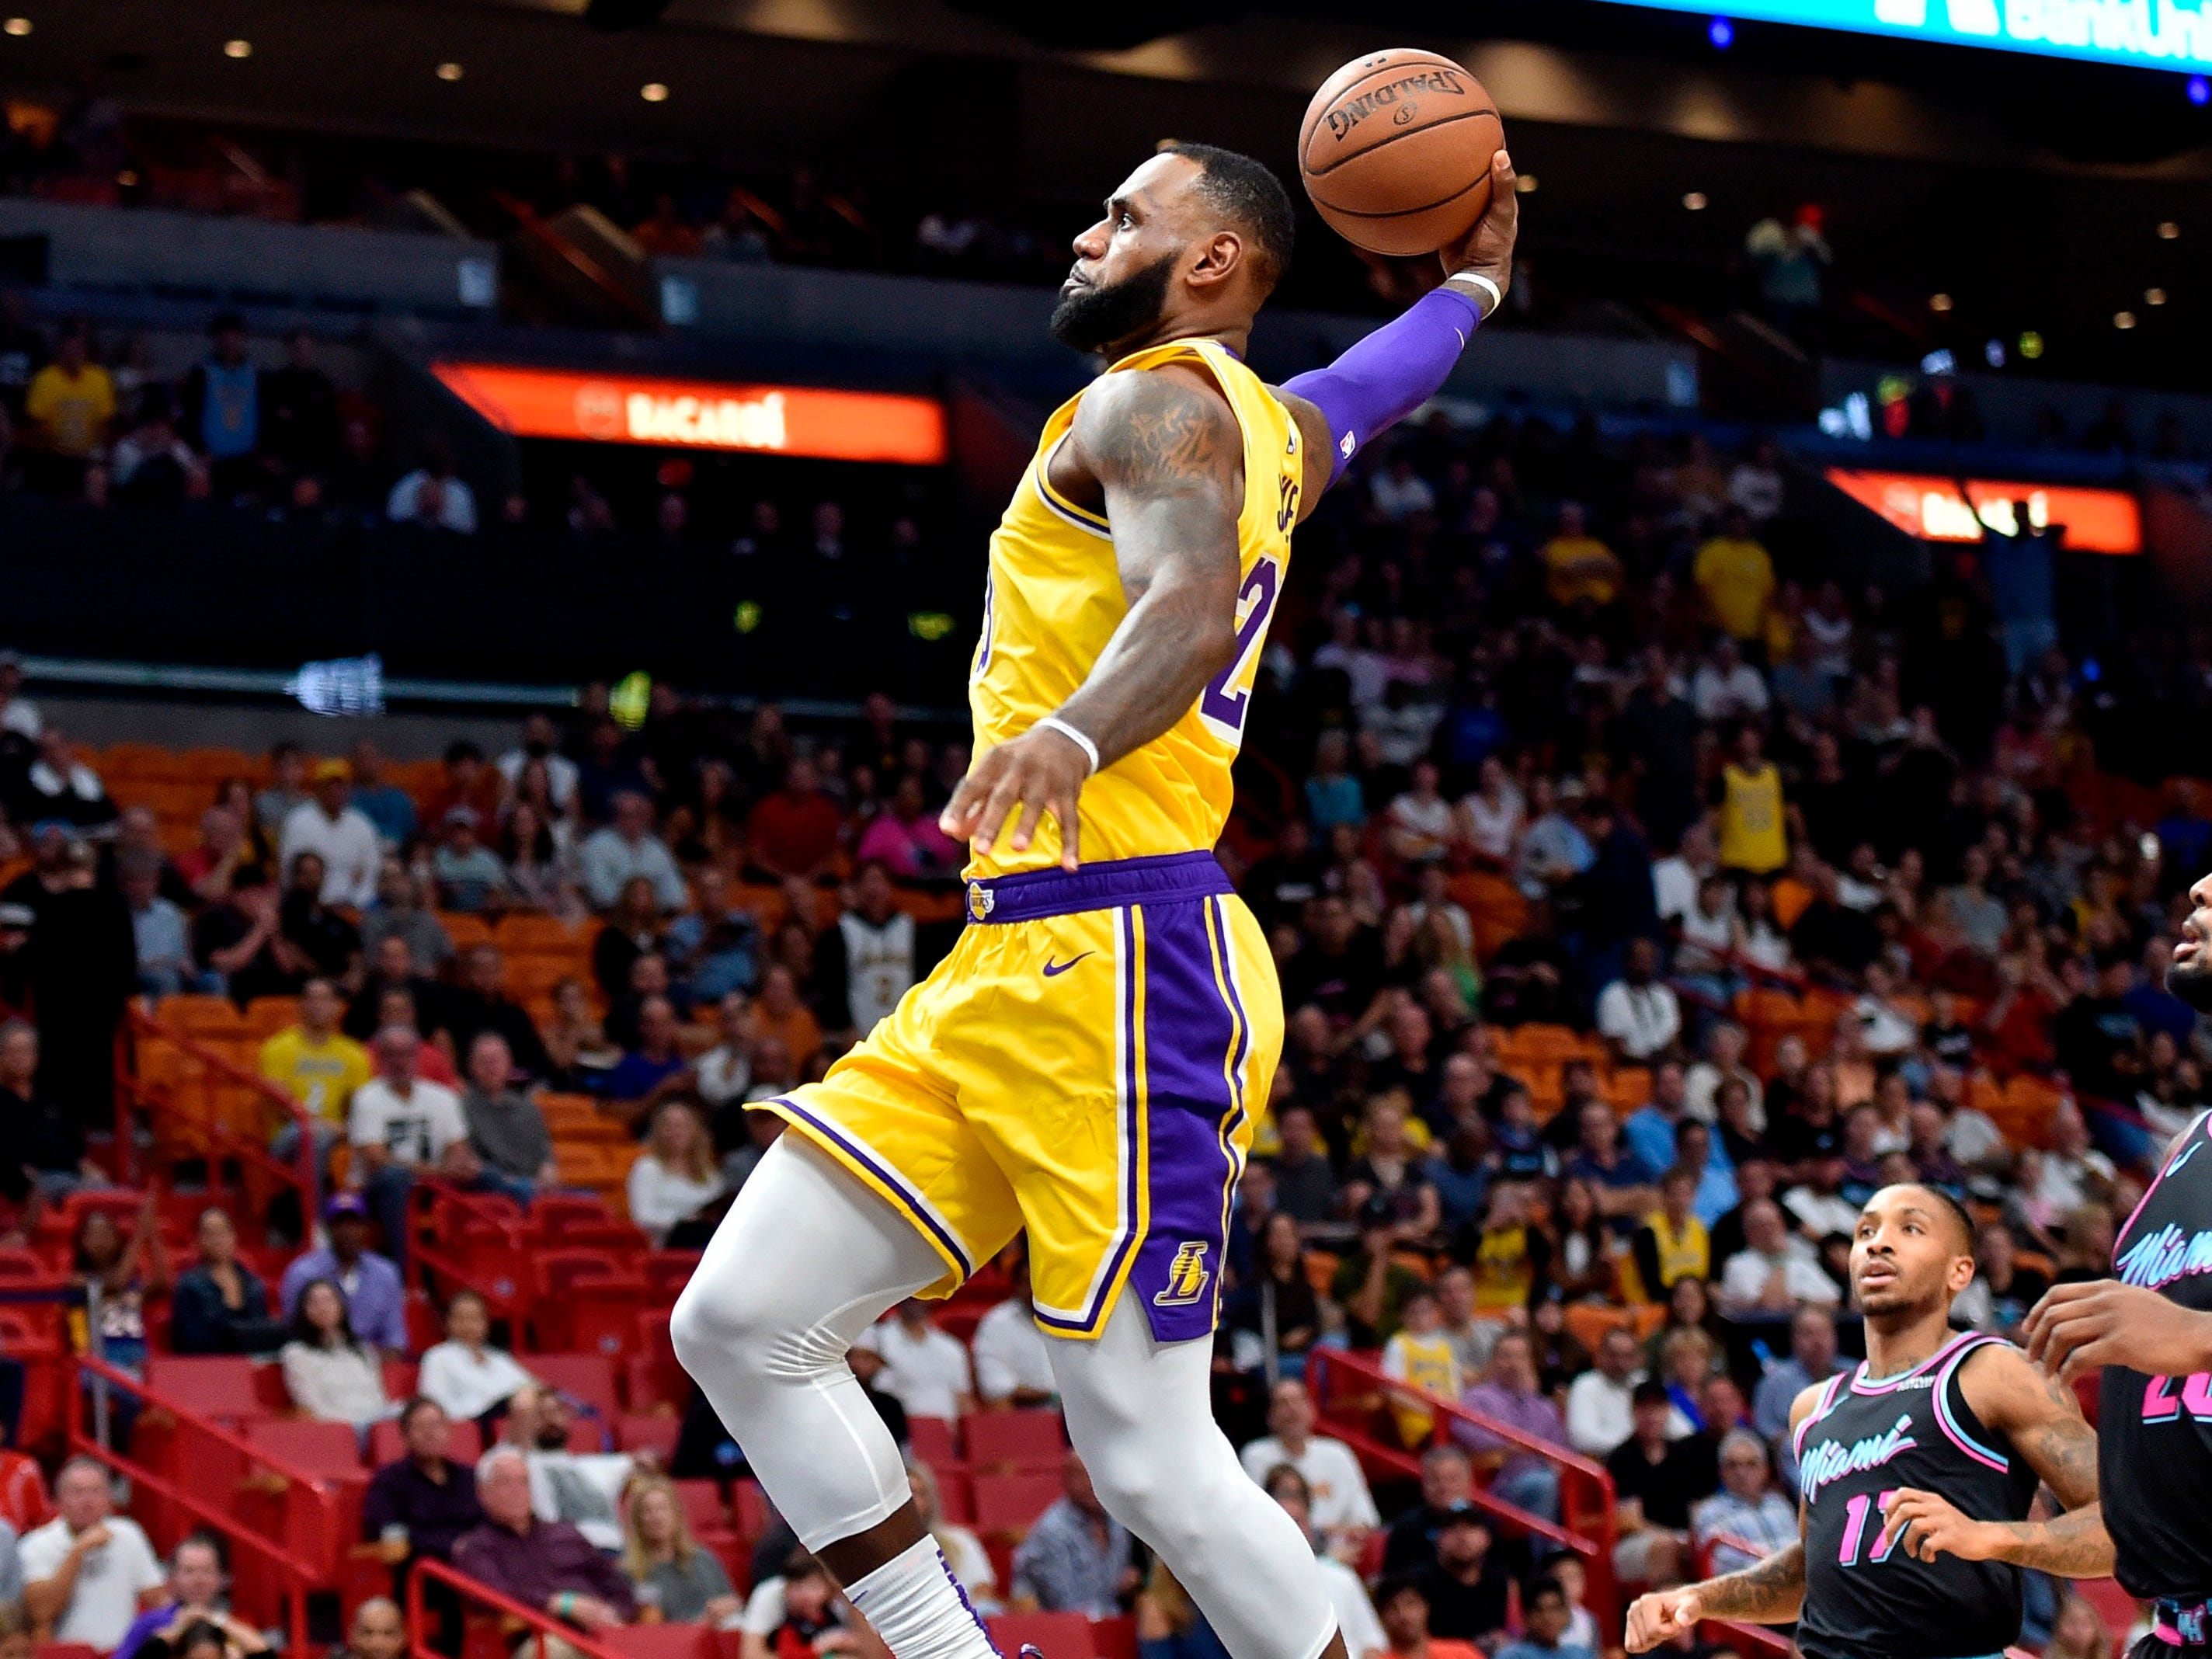 Nov. 18: Lakers forward LeBron James soars to the bucket for the one-handed finish during the first half against the Heat.